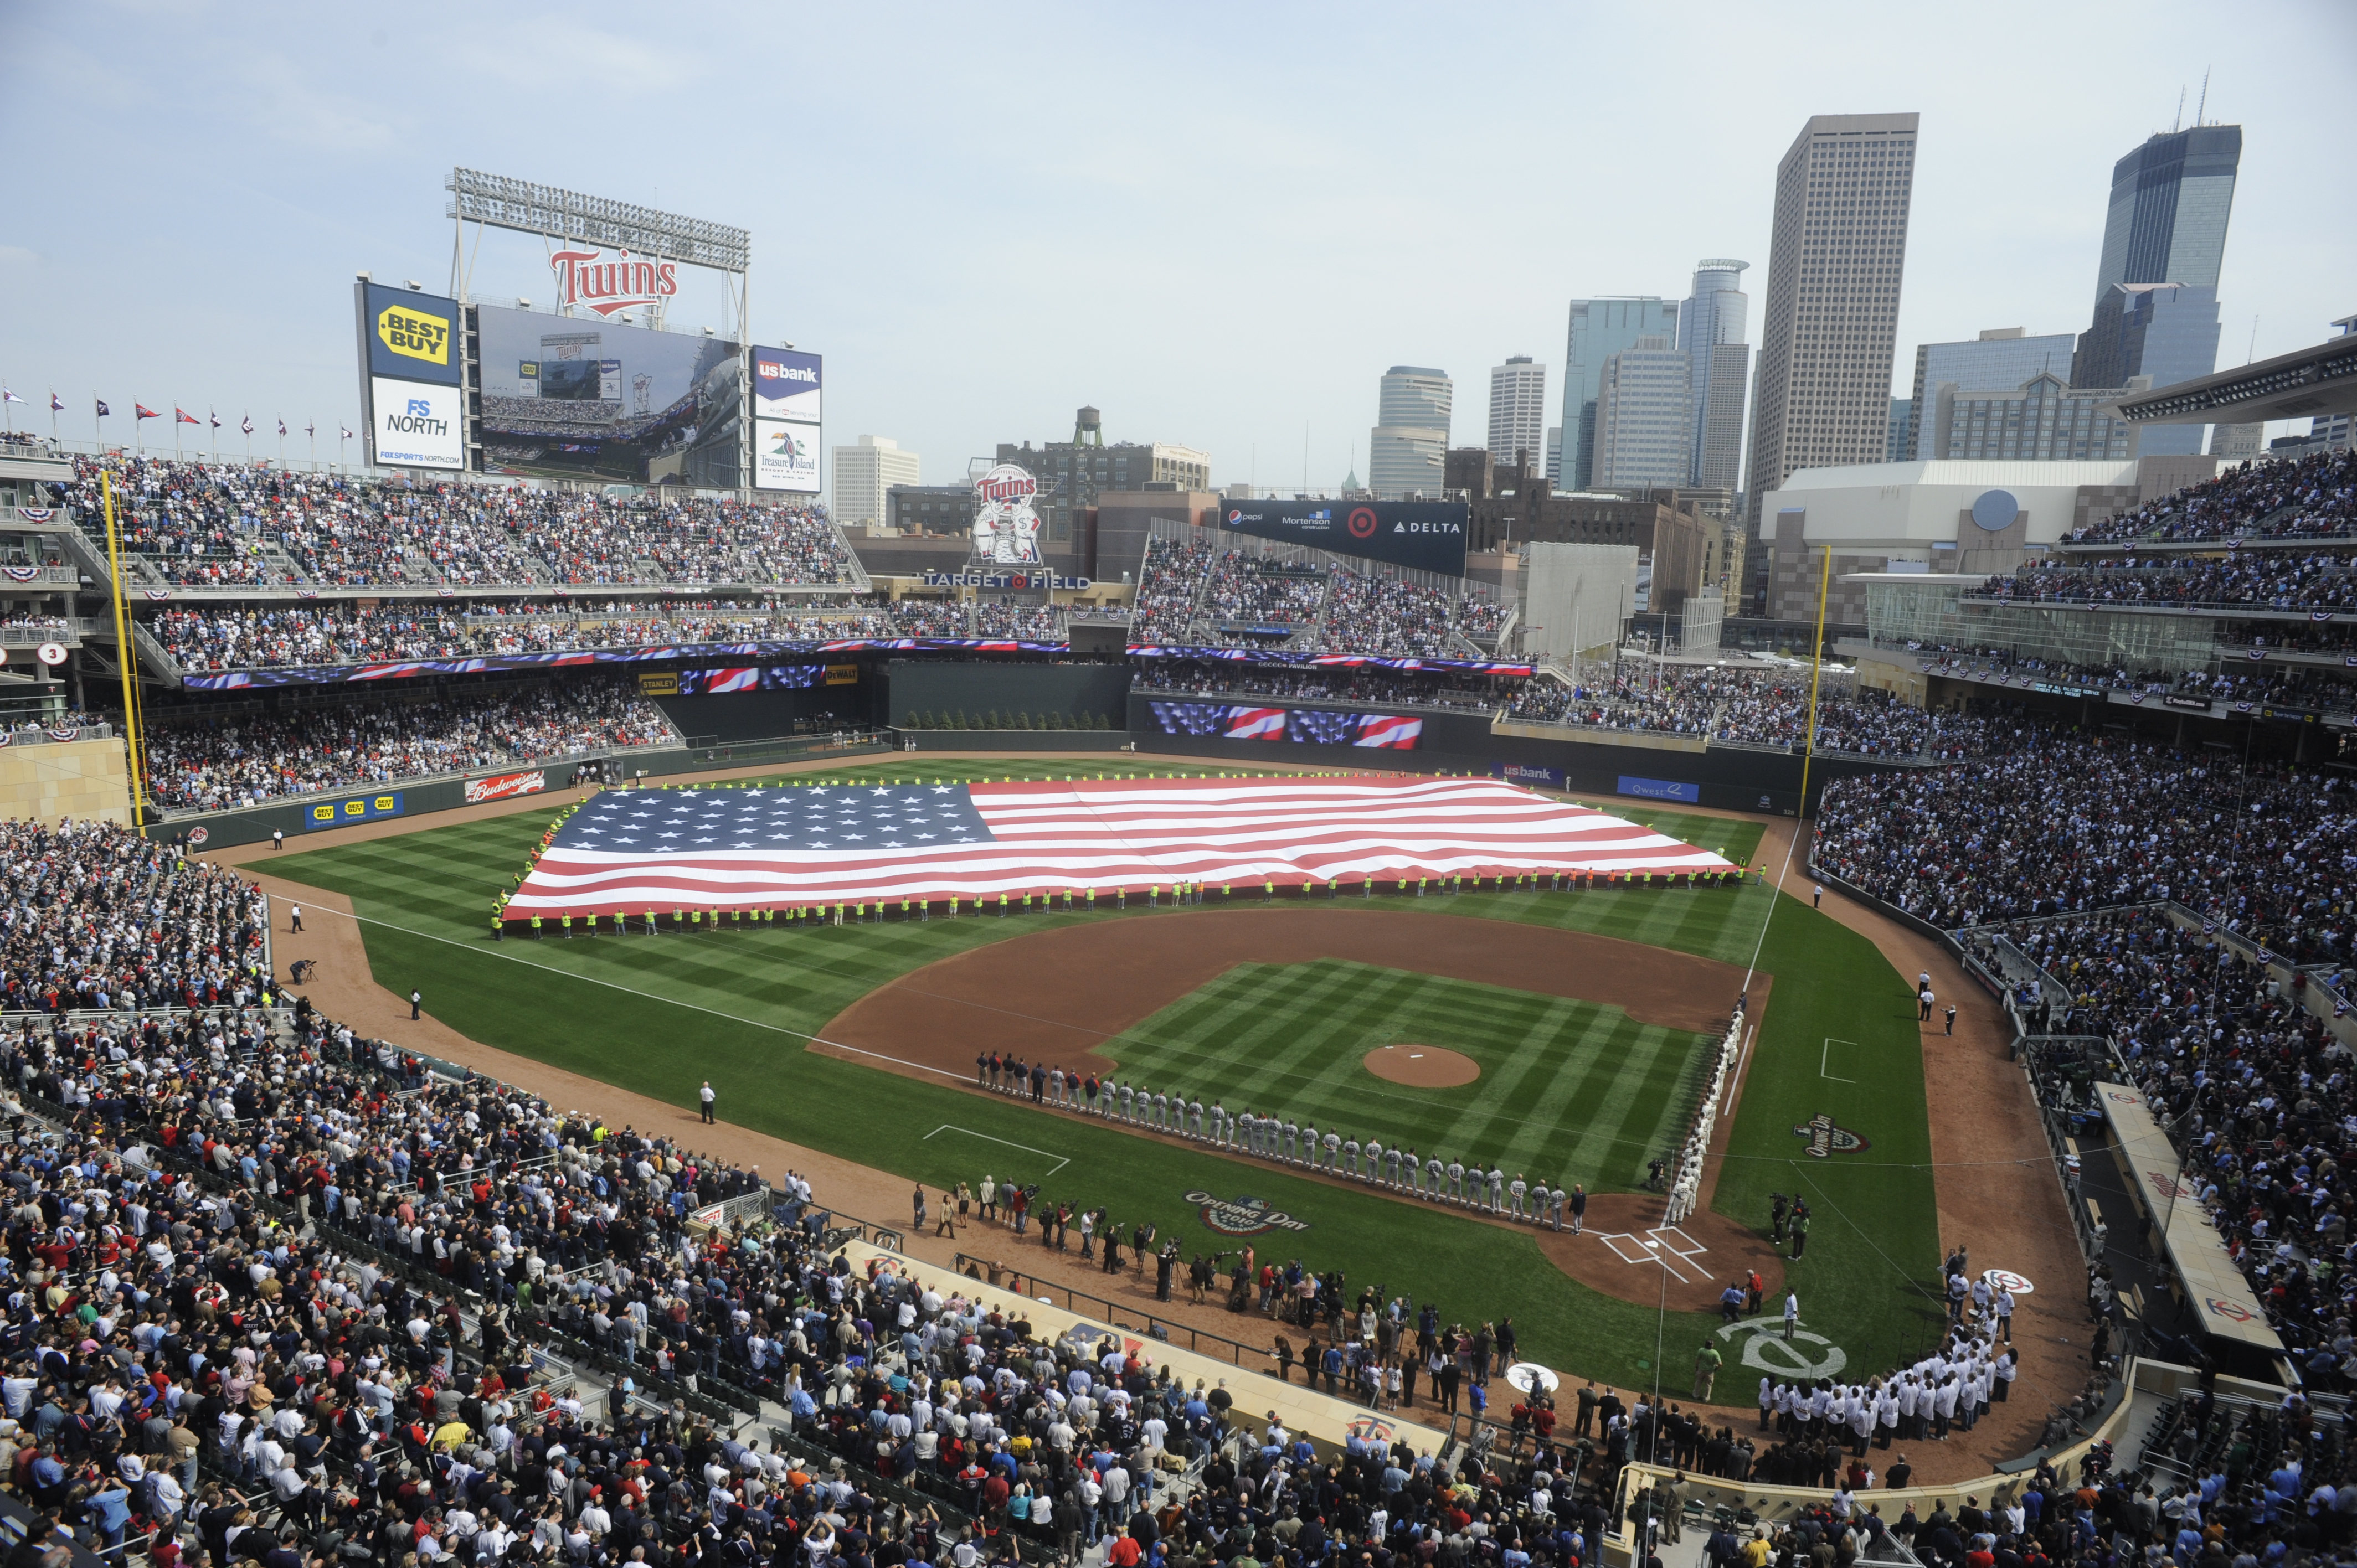 MINNESOTA, MN - APRIL 12: Target Field during the National Anthem during the Minnesota Twins home opener against the Boston Red Sox on April 12, 2010 in Minneapolis, Minnesota. (Photo by Hannah Foslien /Getty Images)